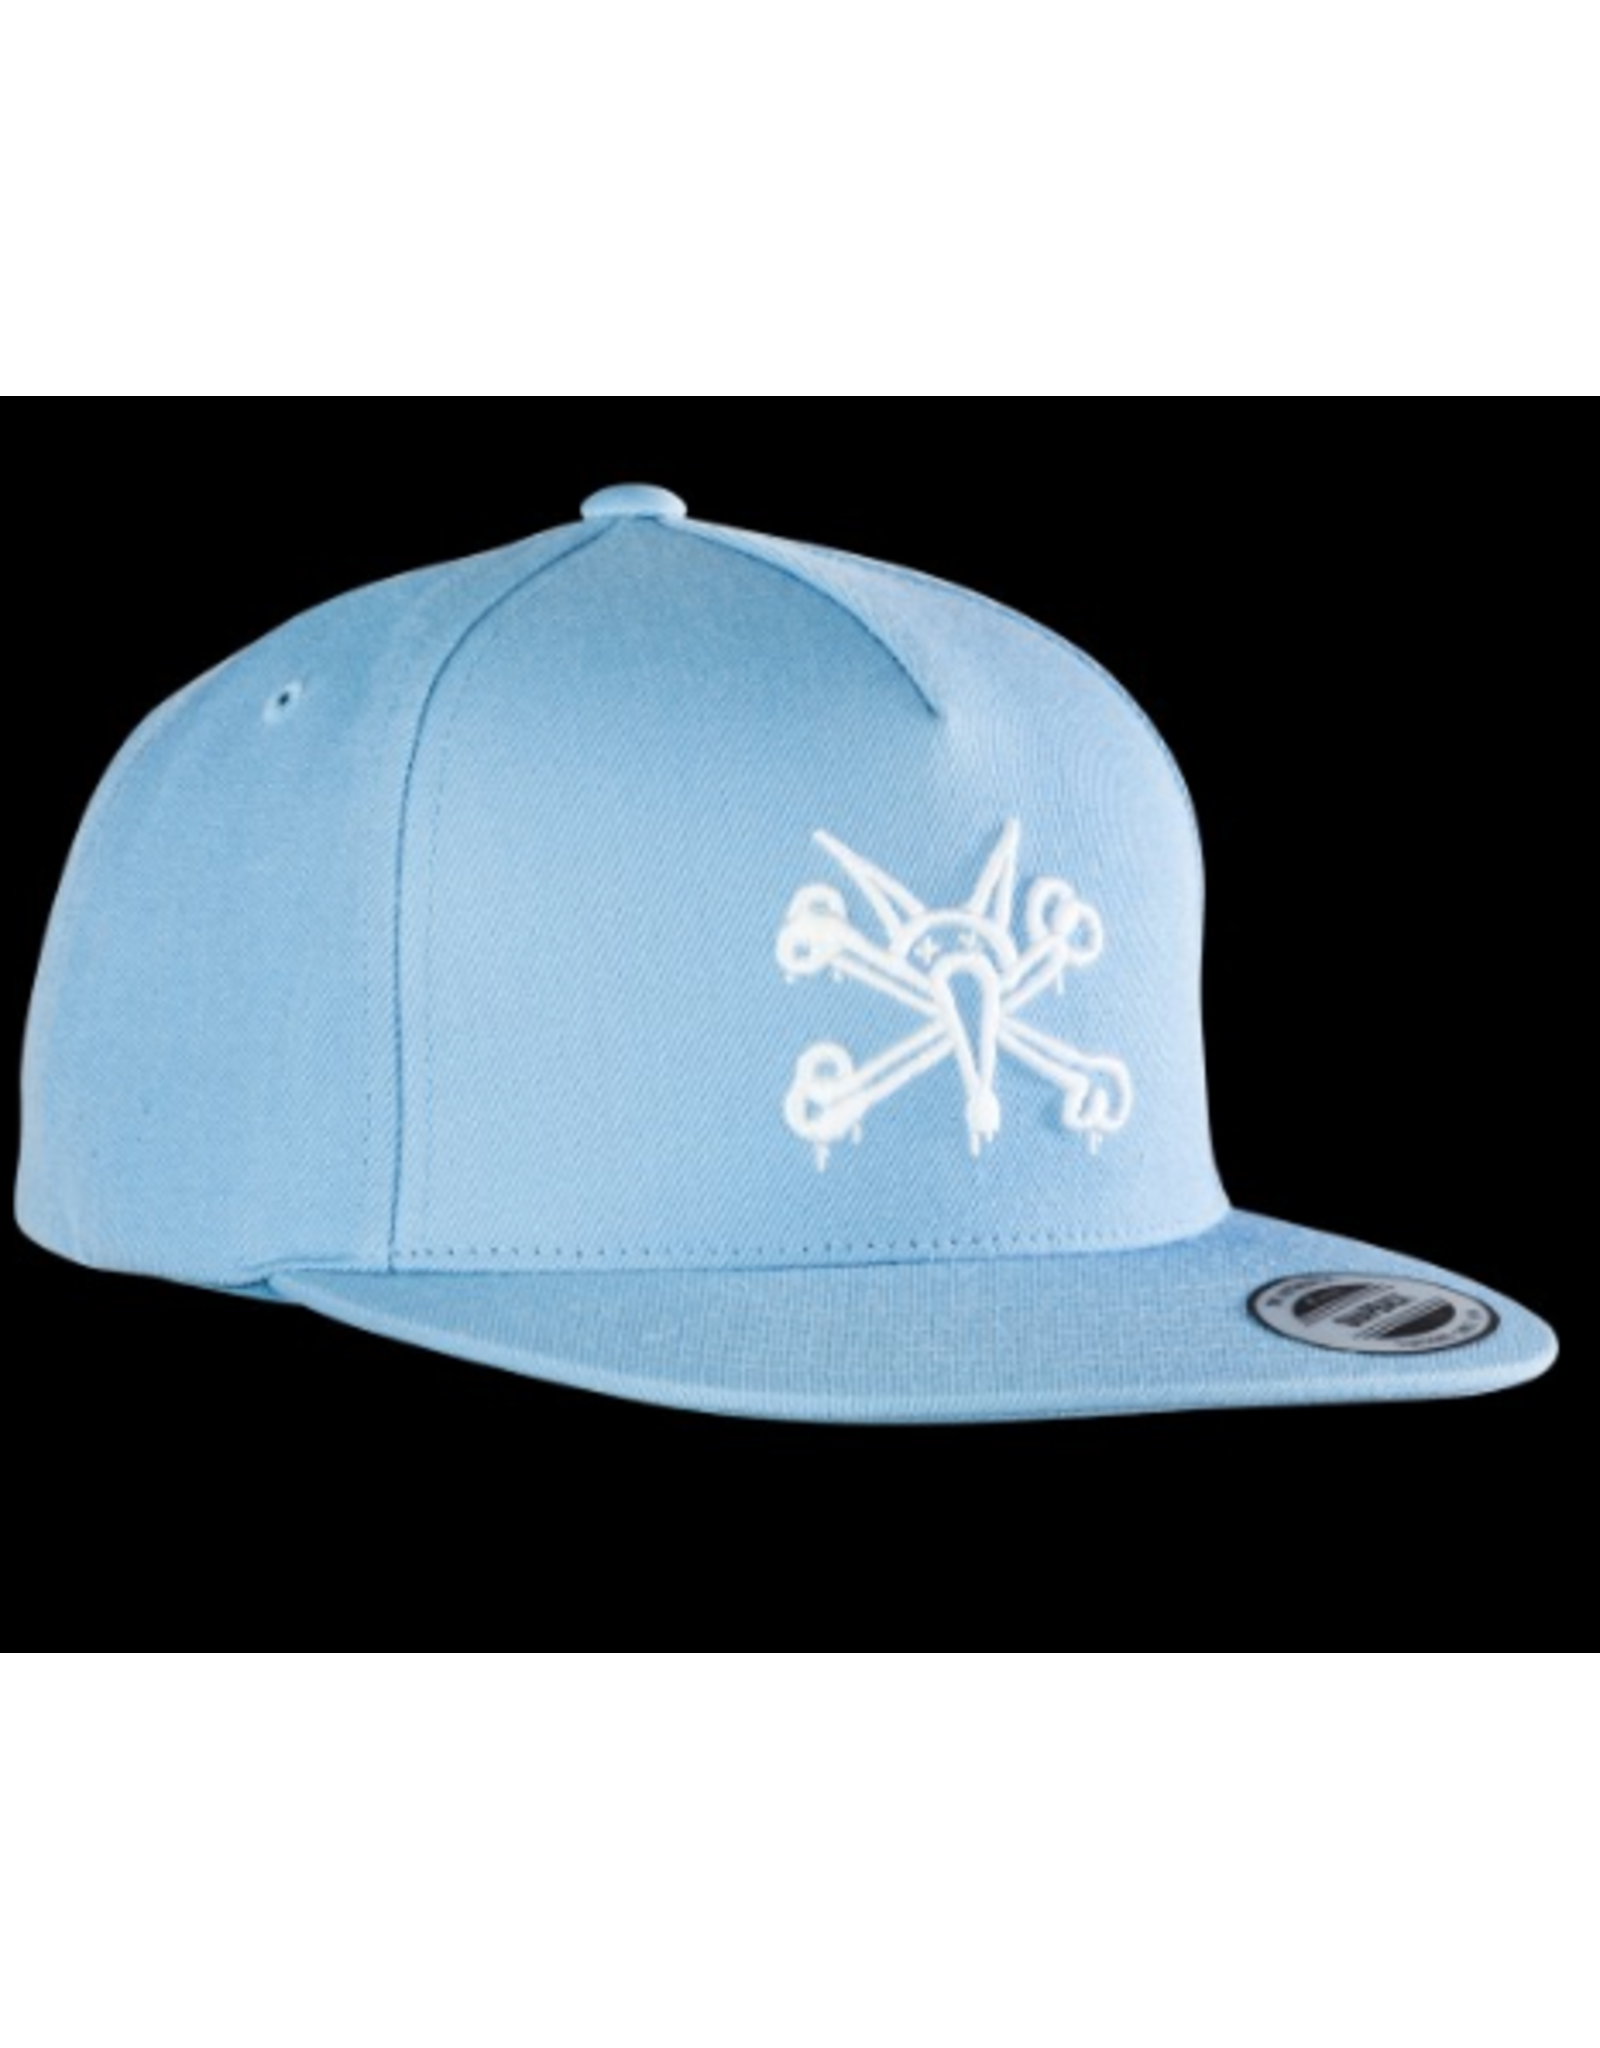 POWELL SNAPBACK PP VATO RAT '3' POWDER BLUE HAT